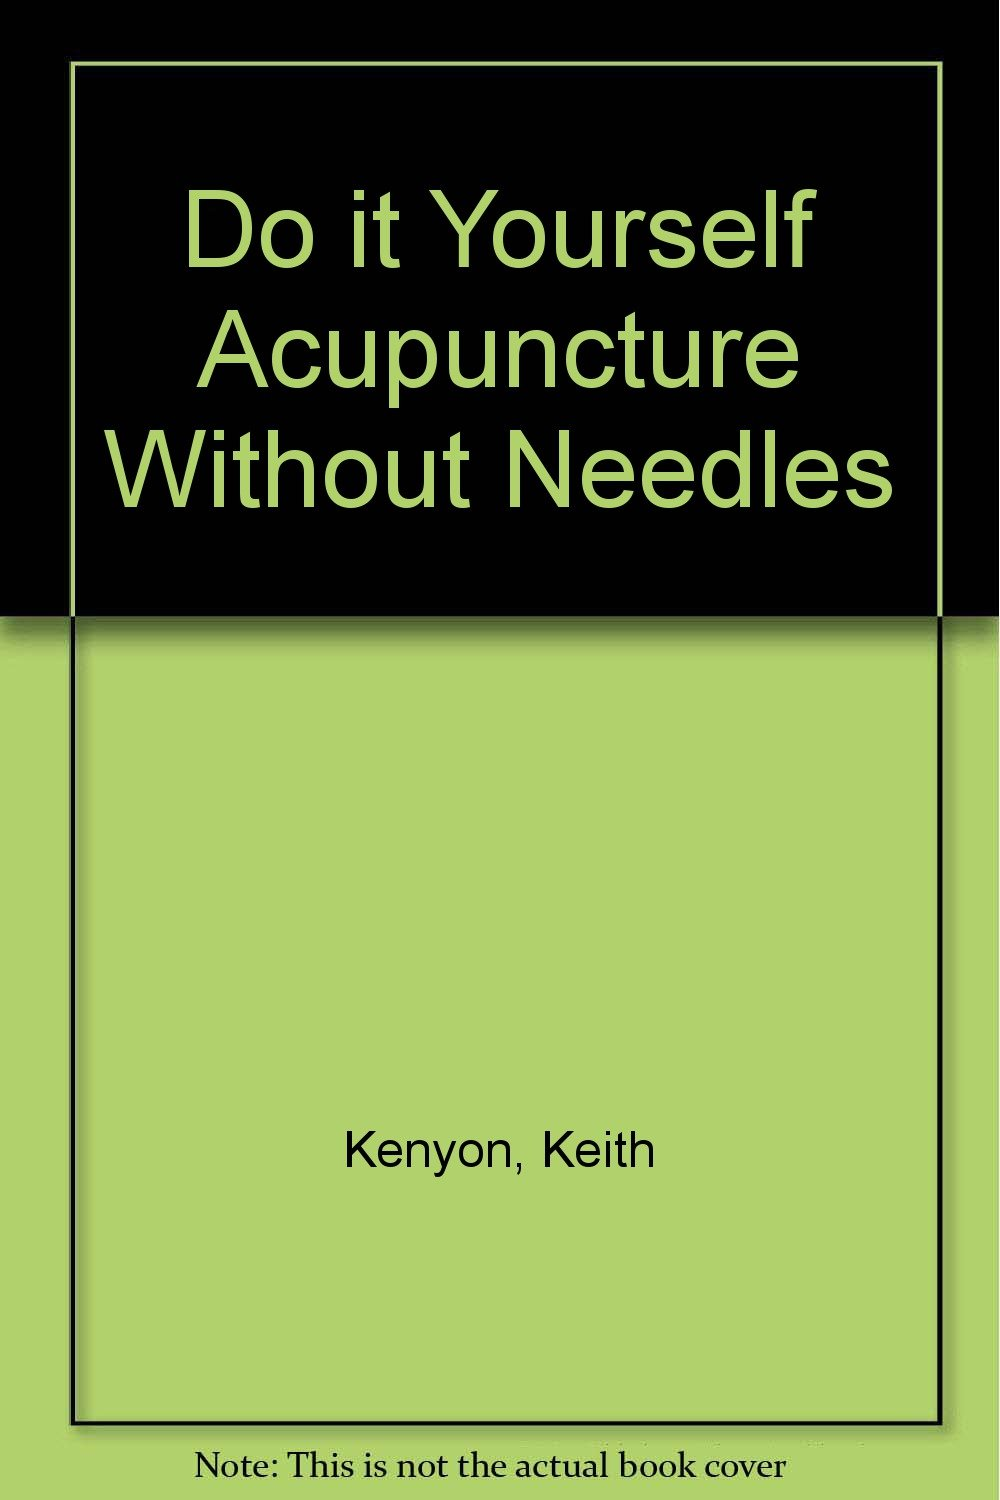 Do it yourself acupuncture without needles keith kenyon do it yourself acupuncture without needles keith kenyon 9780668043335 amazon books solutioingenieria Choice Image